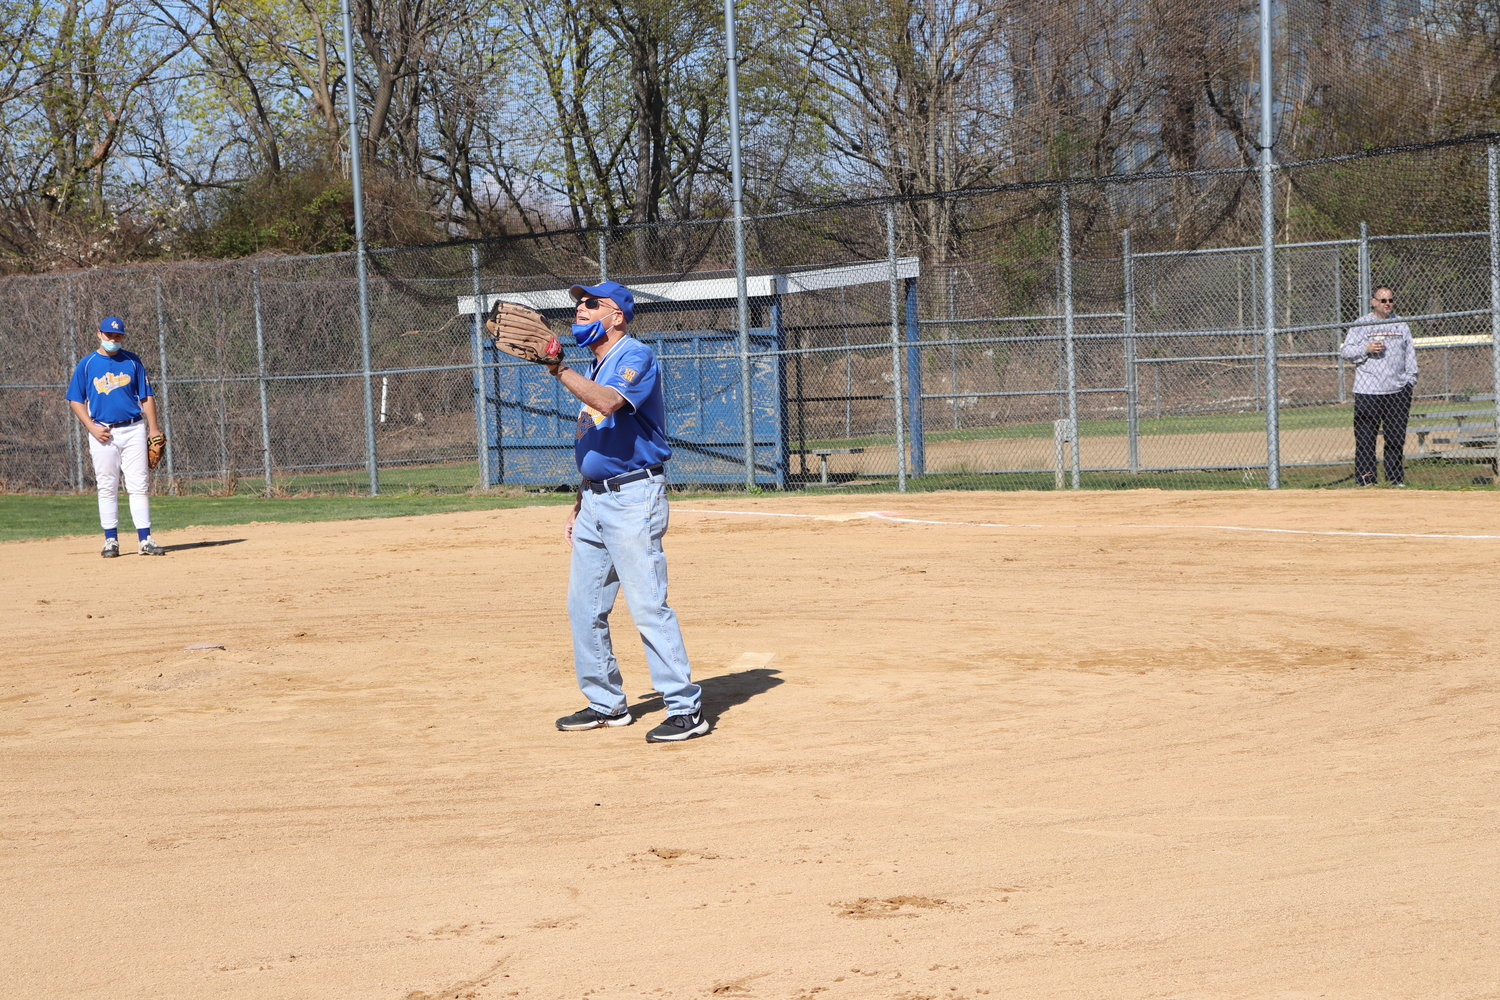 Coach Harvey Pollack, above, pitched on Sunday morning.